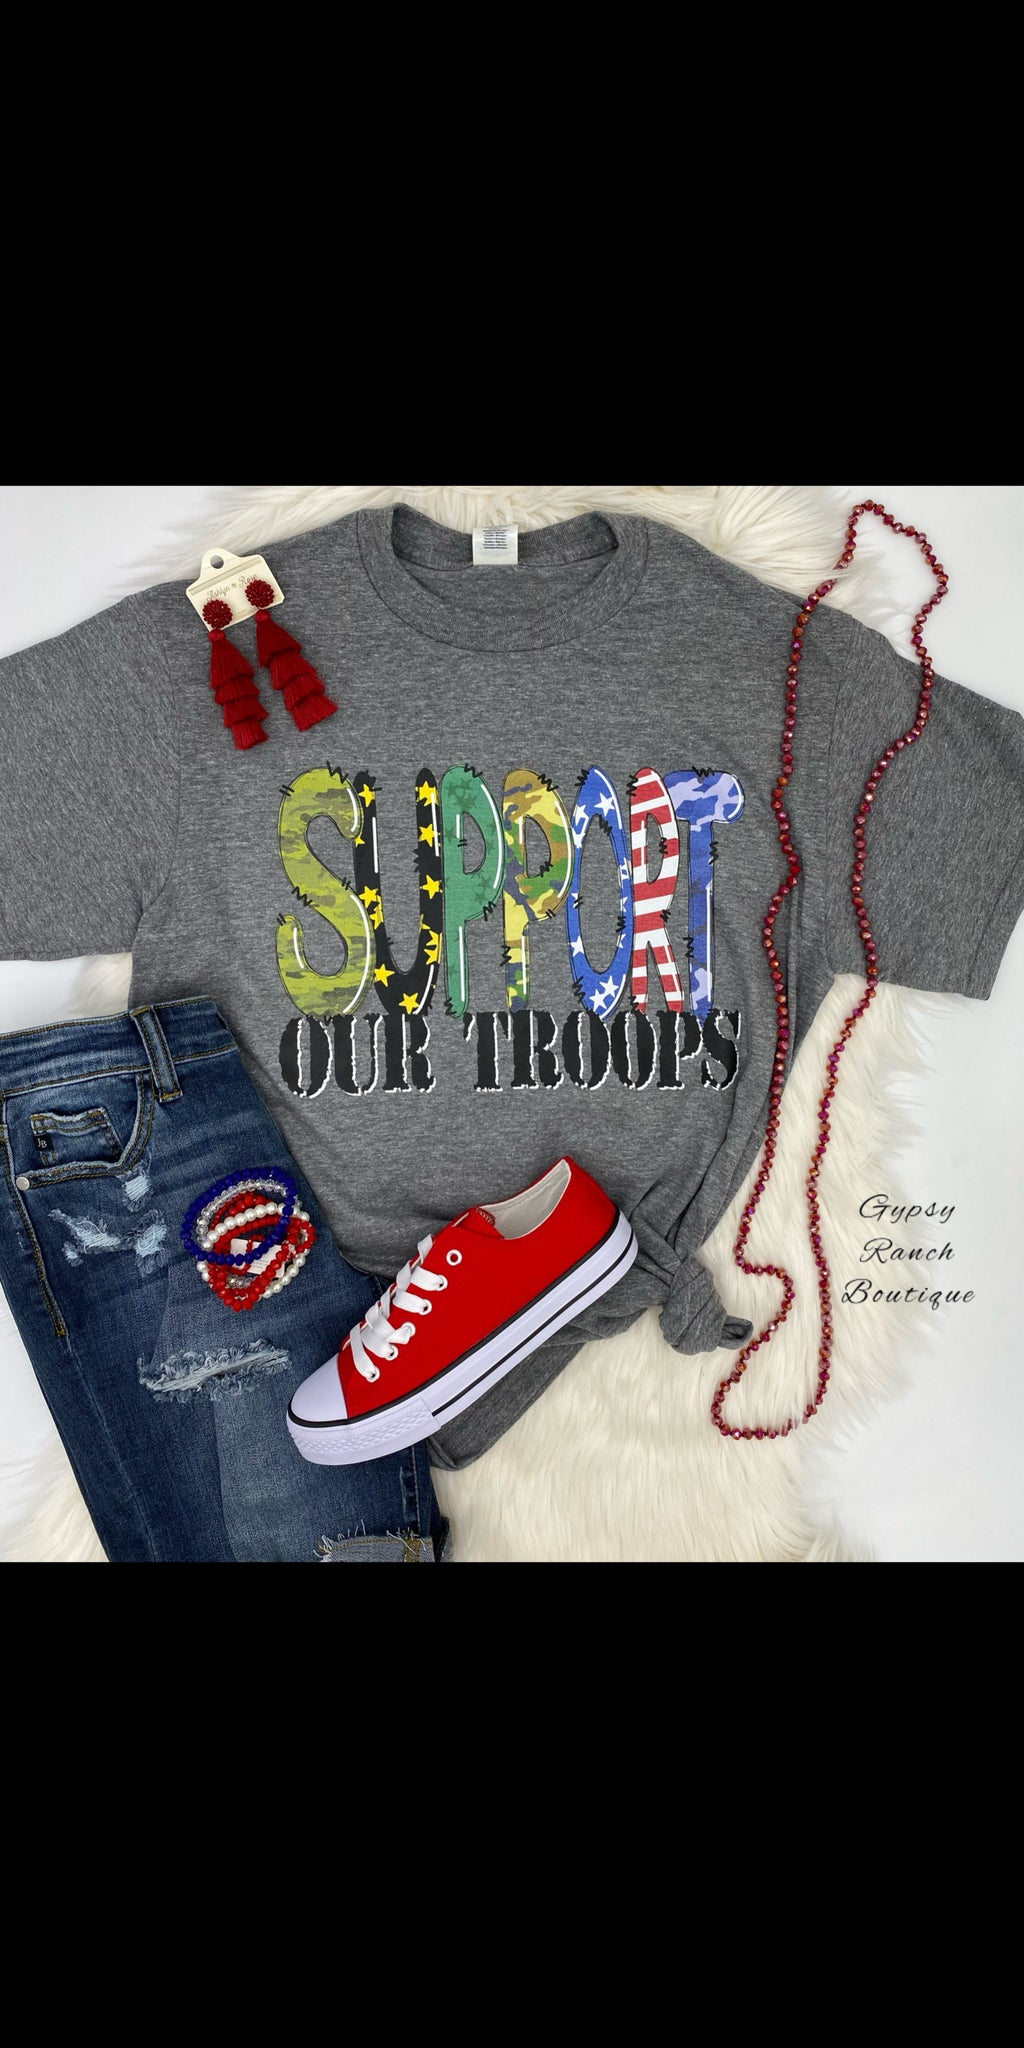 Support Our Troops Top - Also in Plus Size